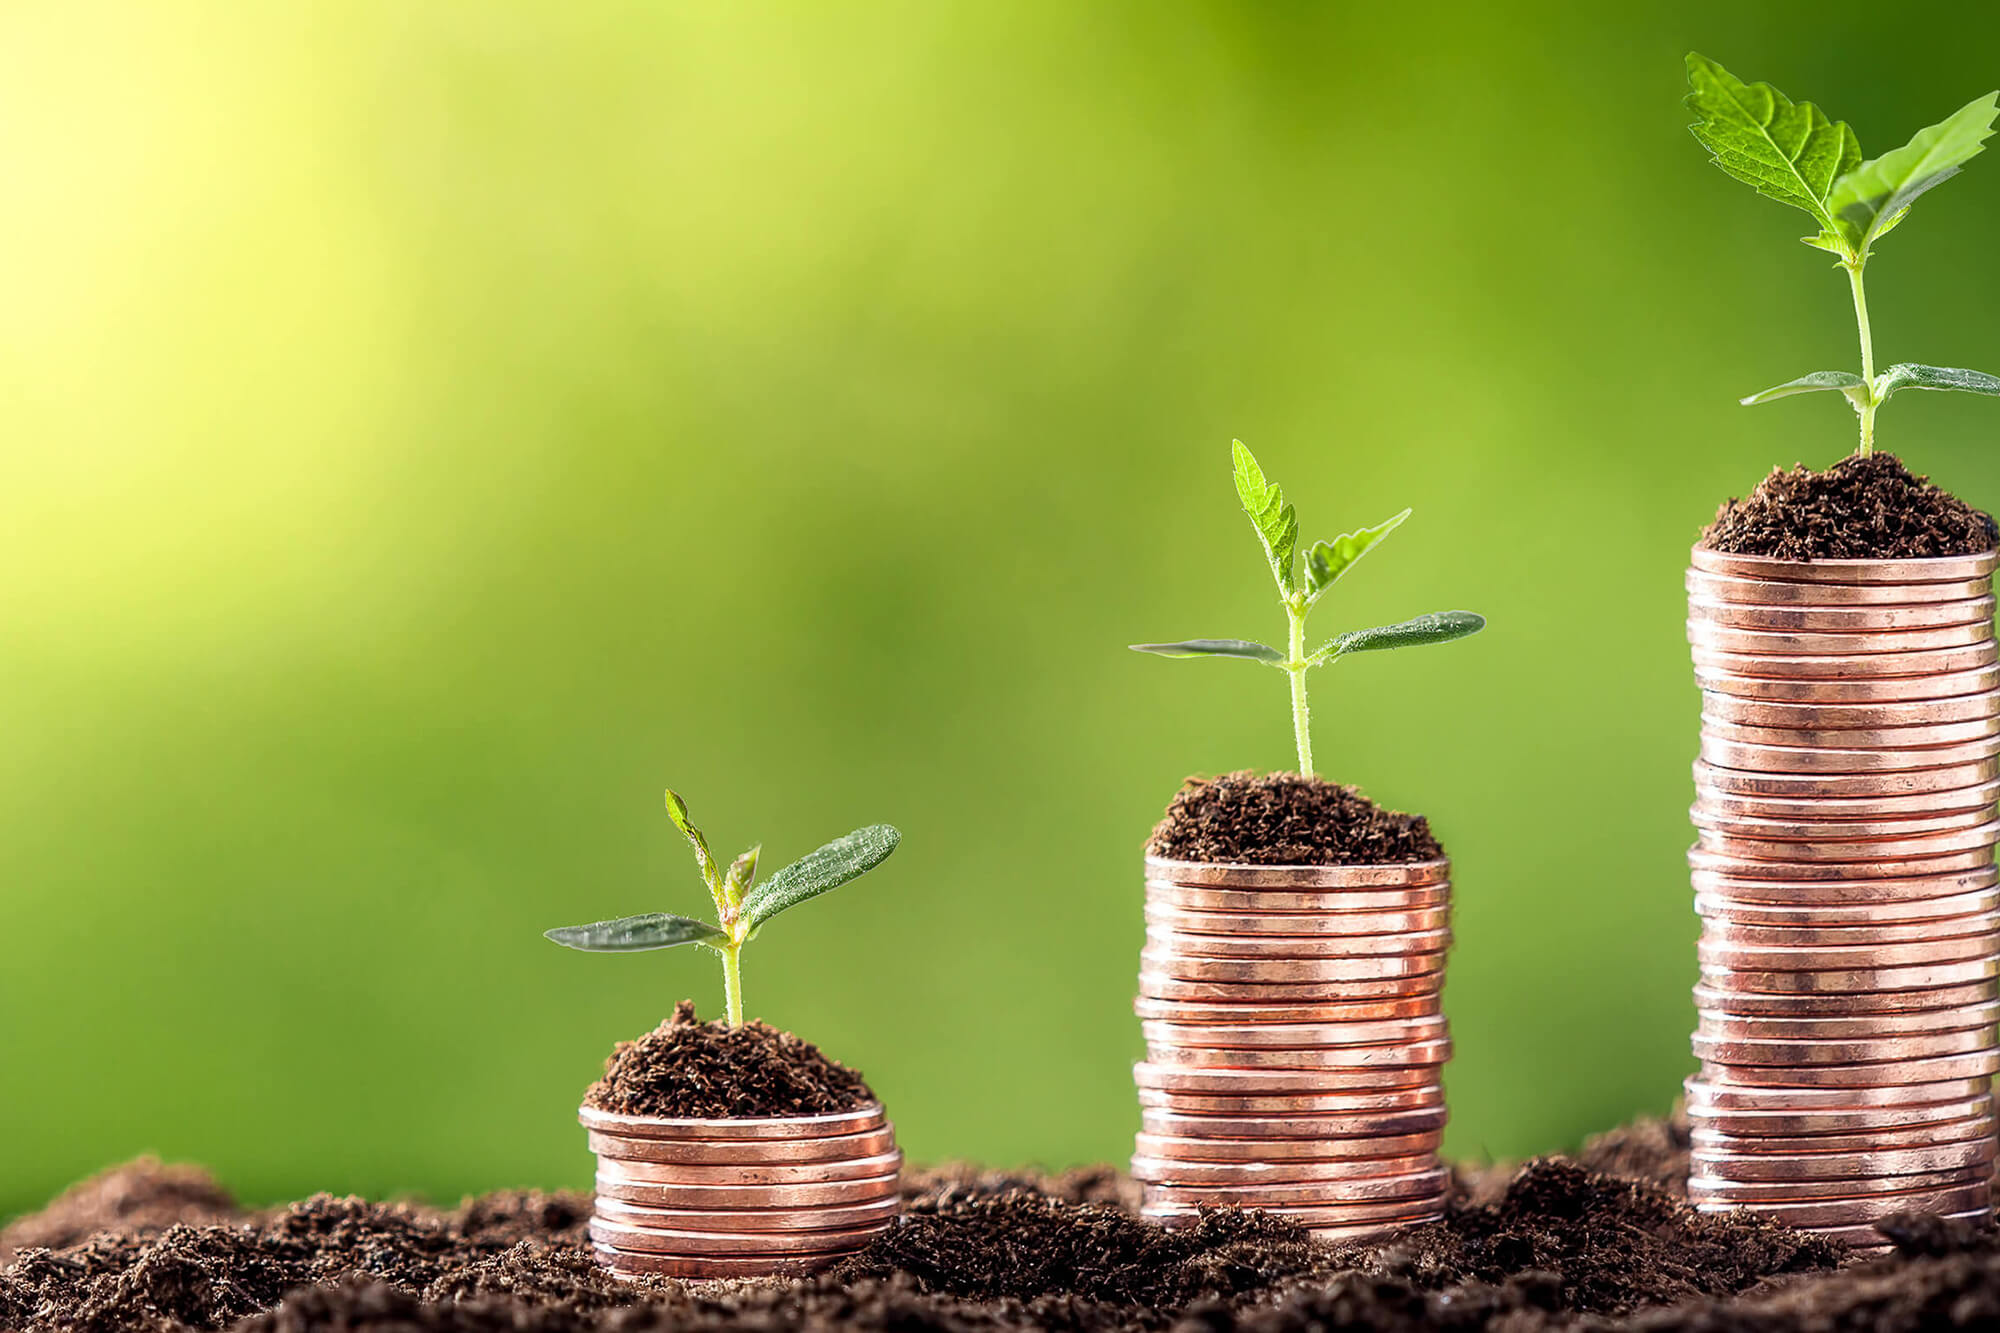 Three piles of coins are lined up against a green background in soil. Each of them features a small plant growing out the top of them.